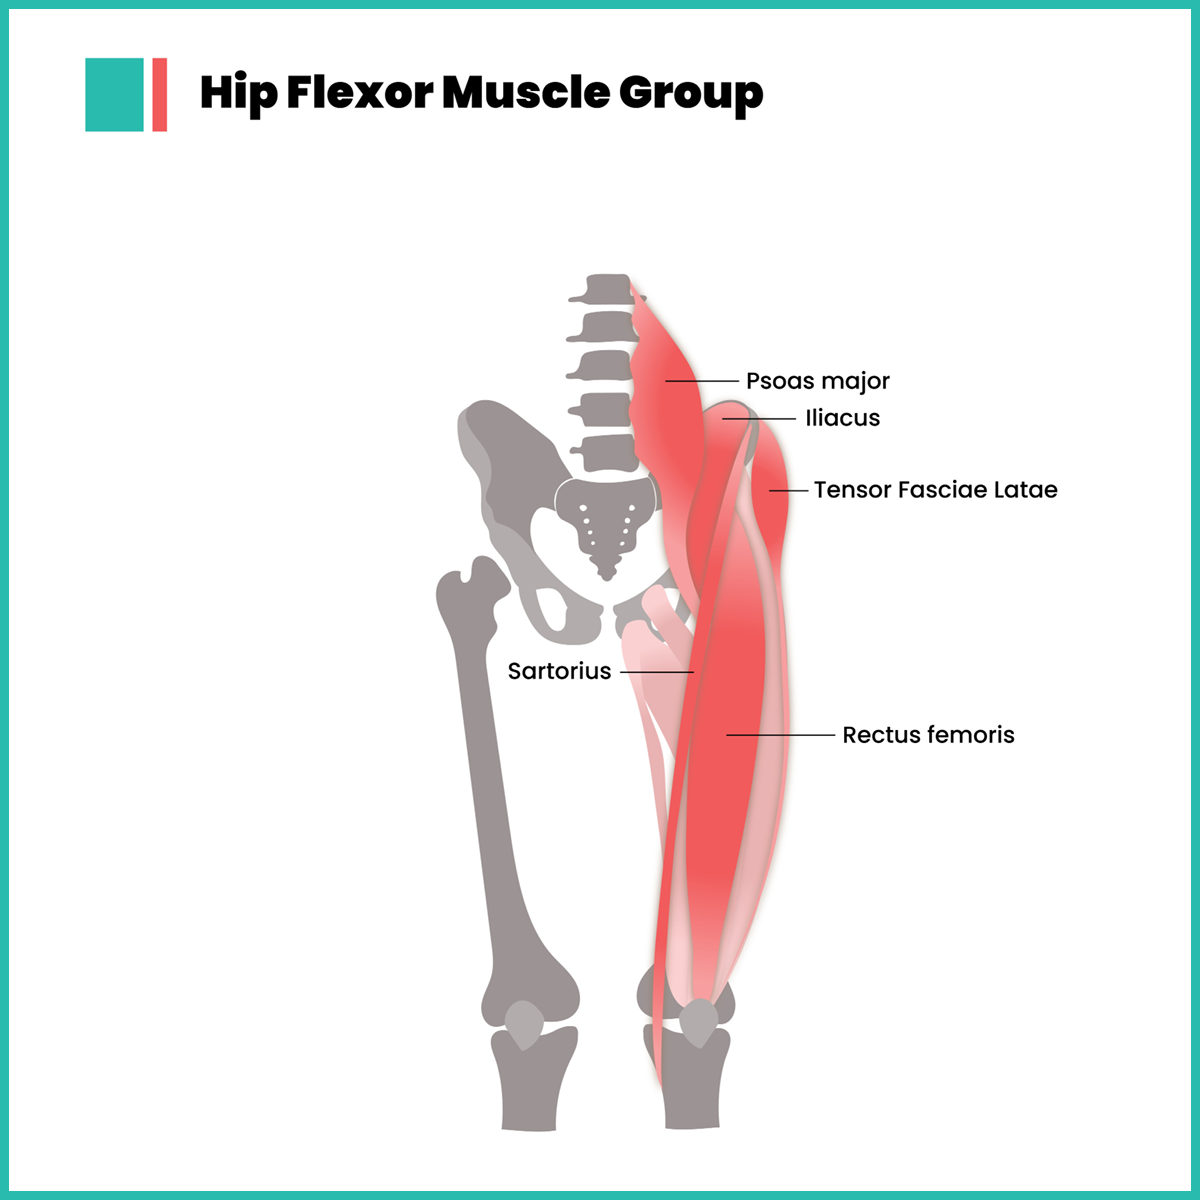 Infographic about hip flexors